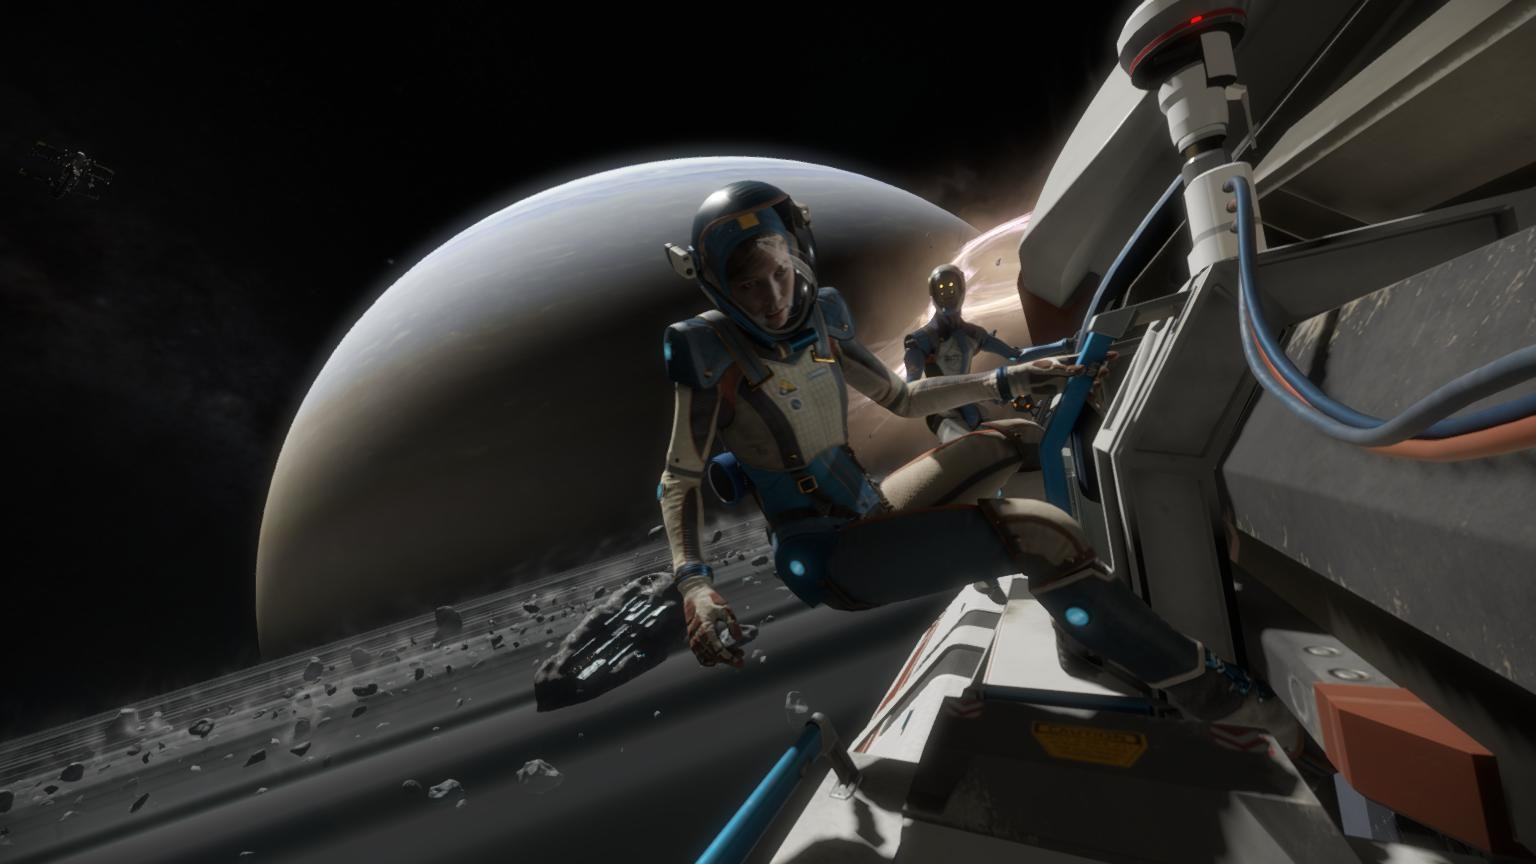 Oculus Connect 4 reveals first sessions and workshops, Lone Echo postmortem